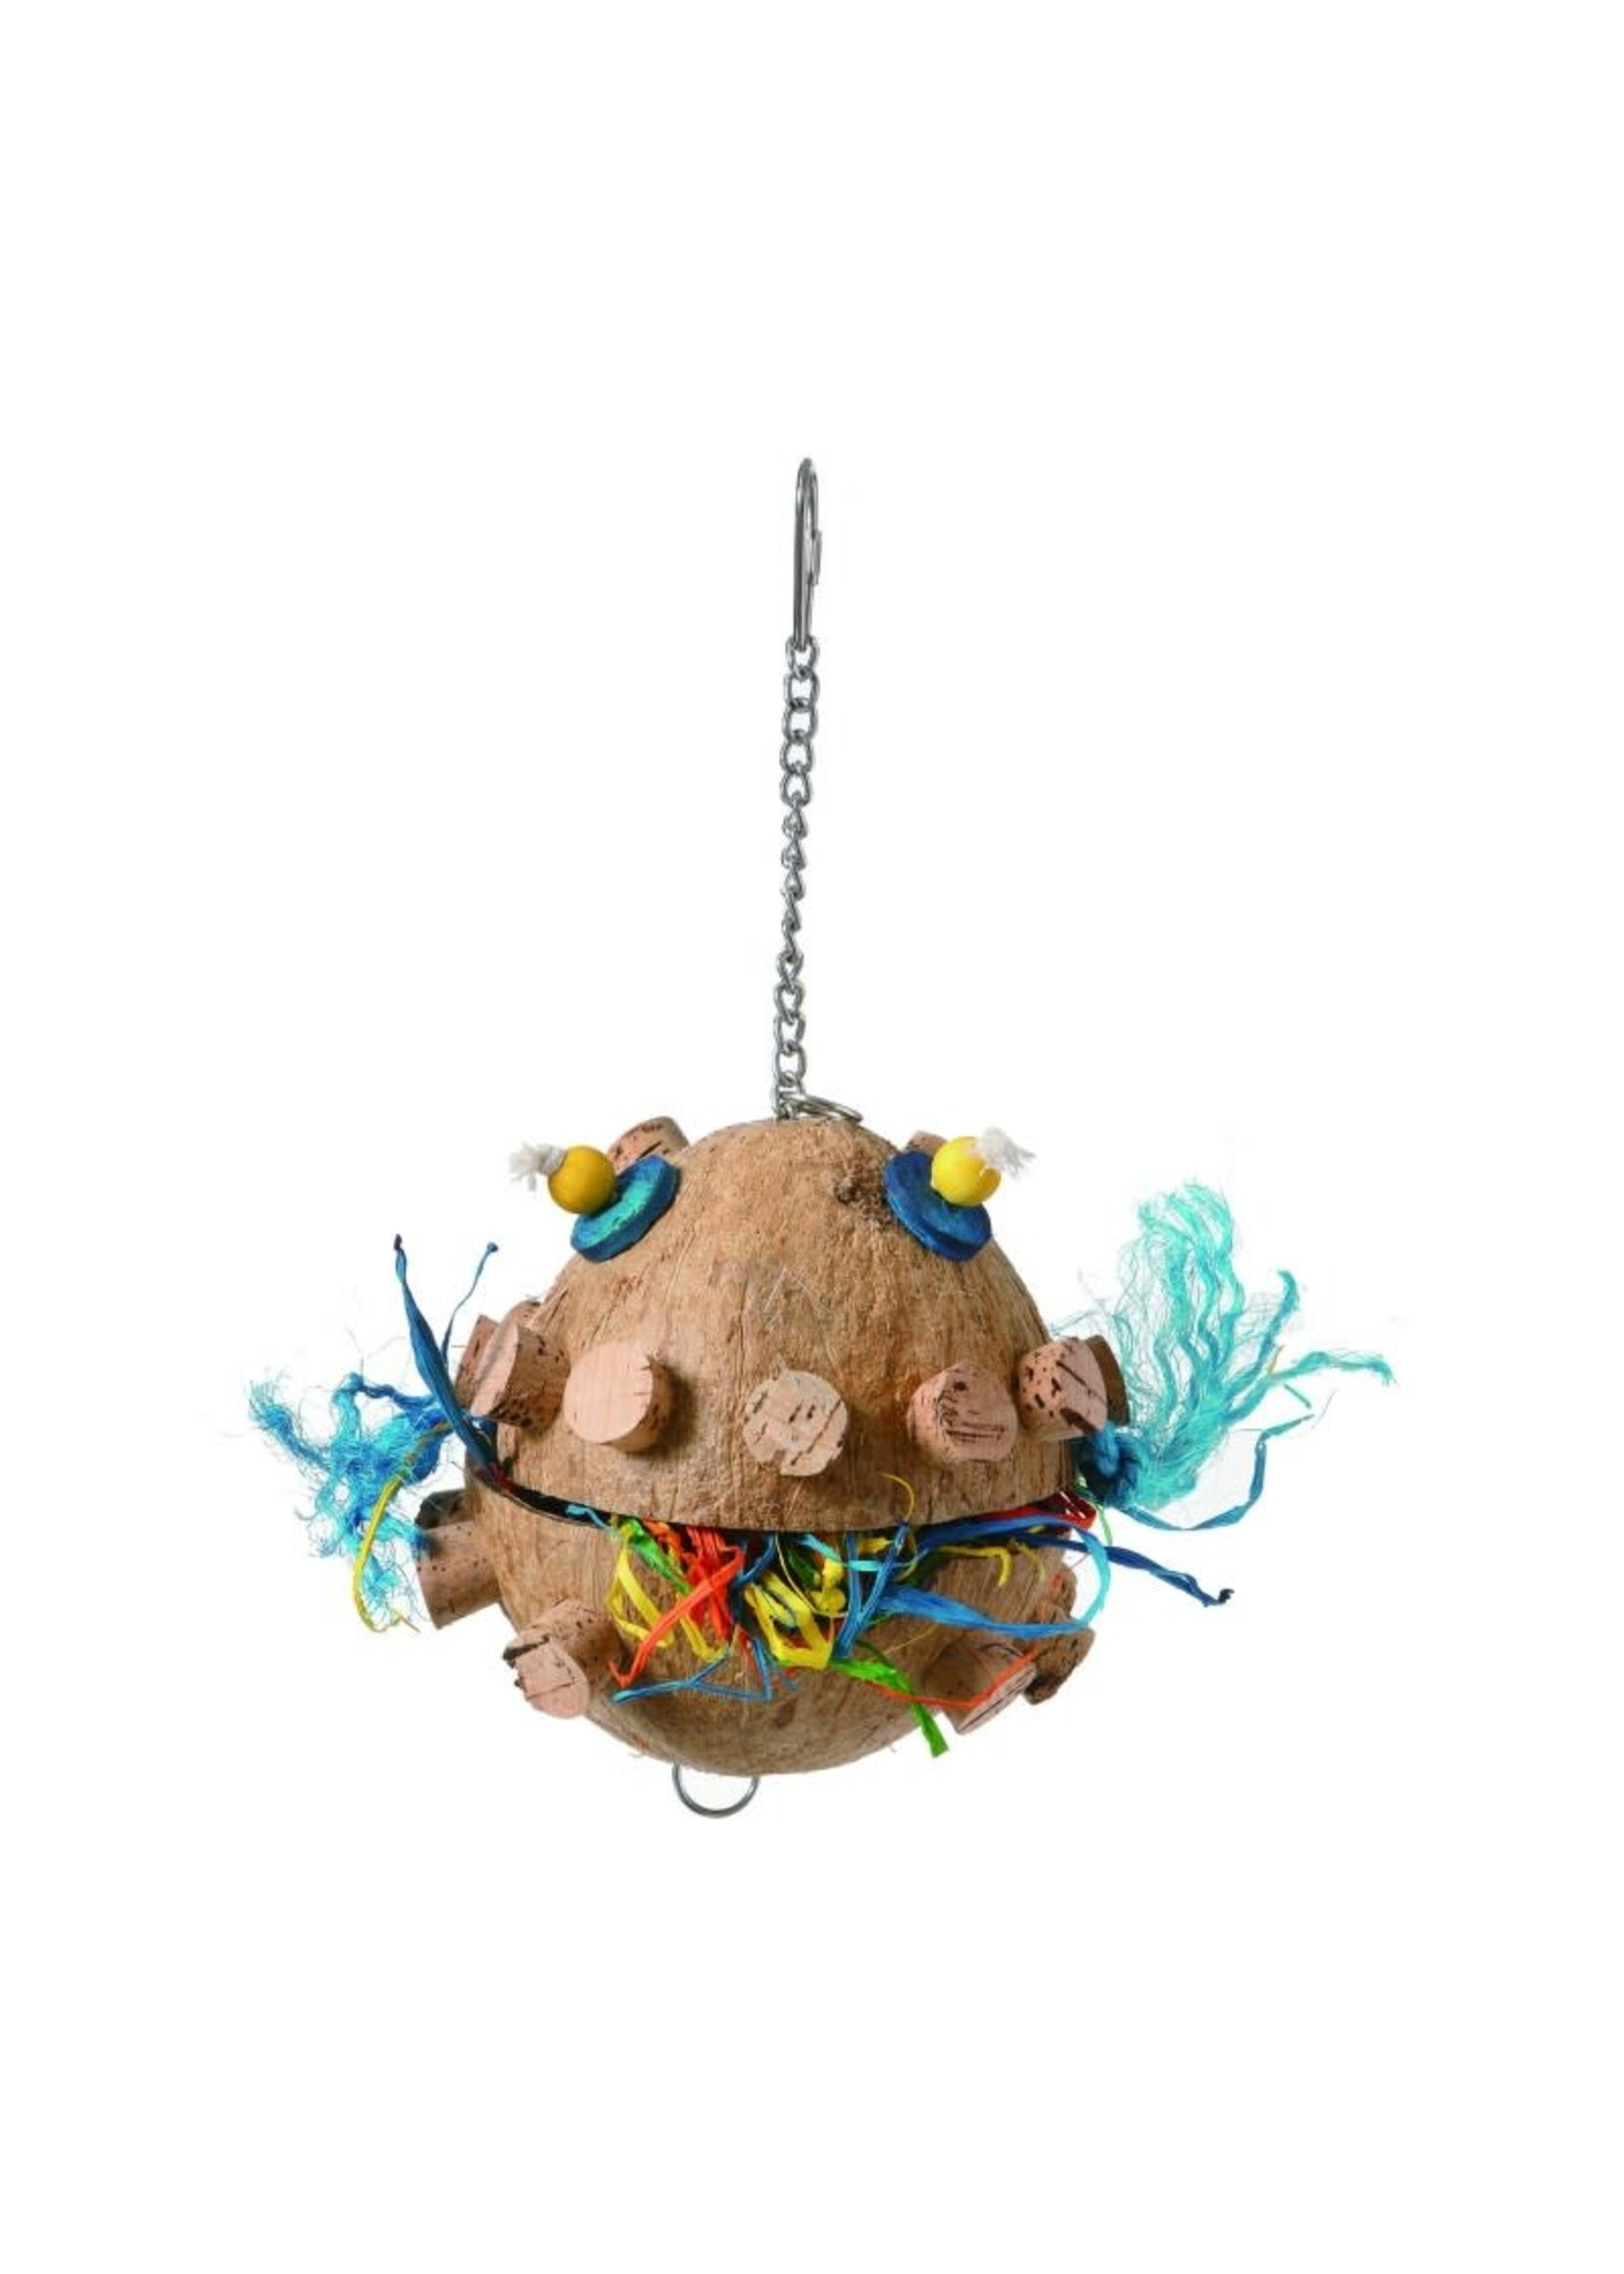 GP PUFFER FISH COCONUT SHELL PARROT BIRD TOY  A781